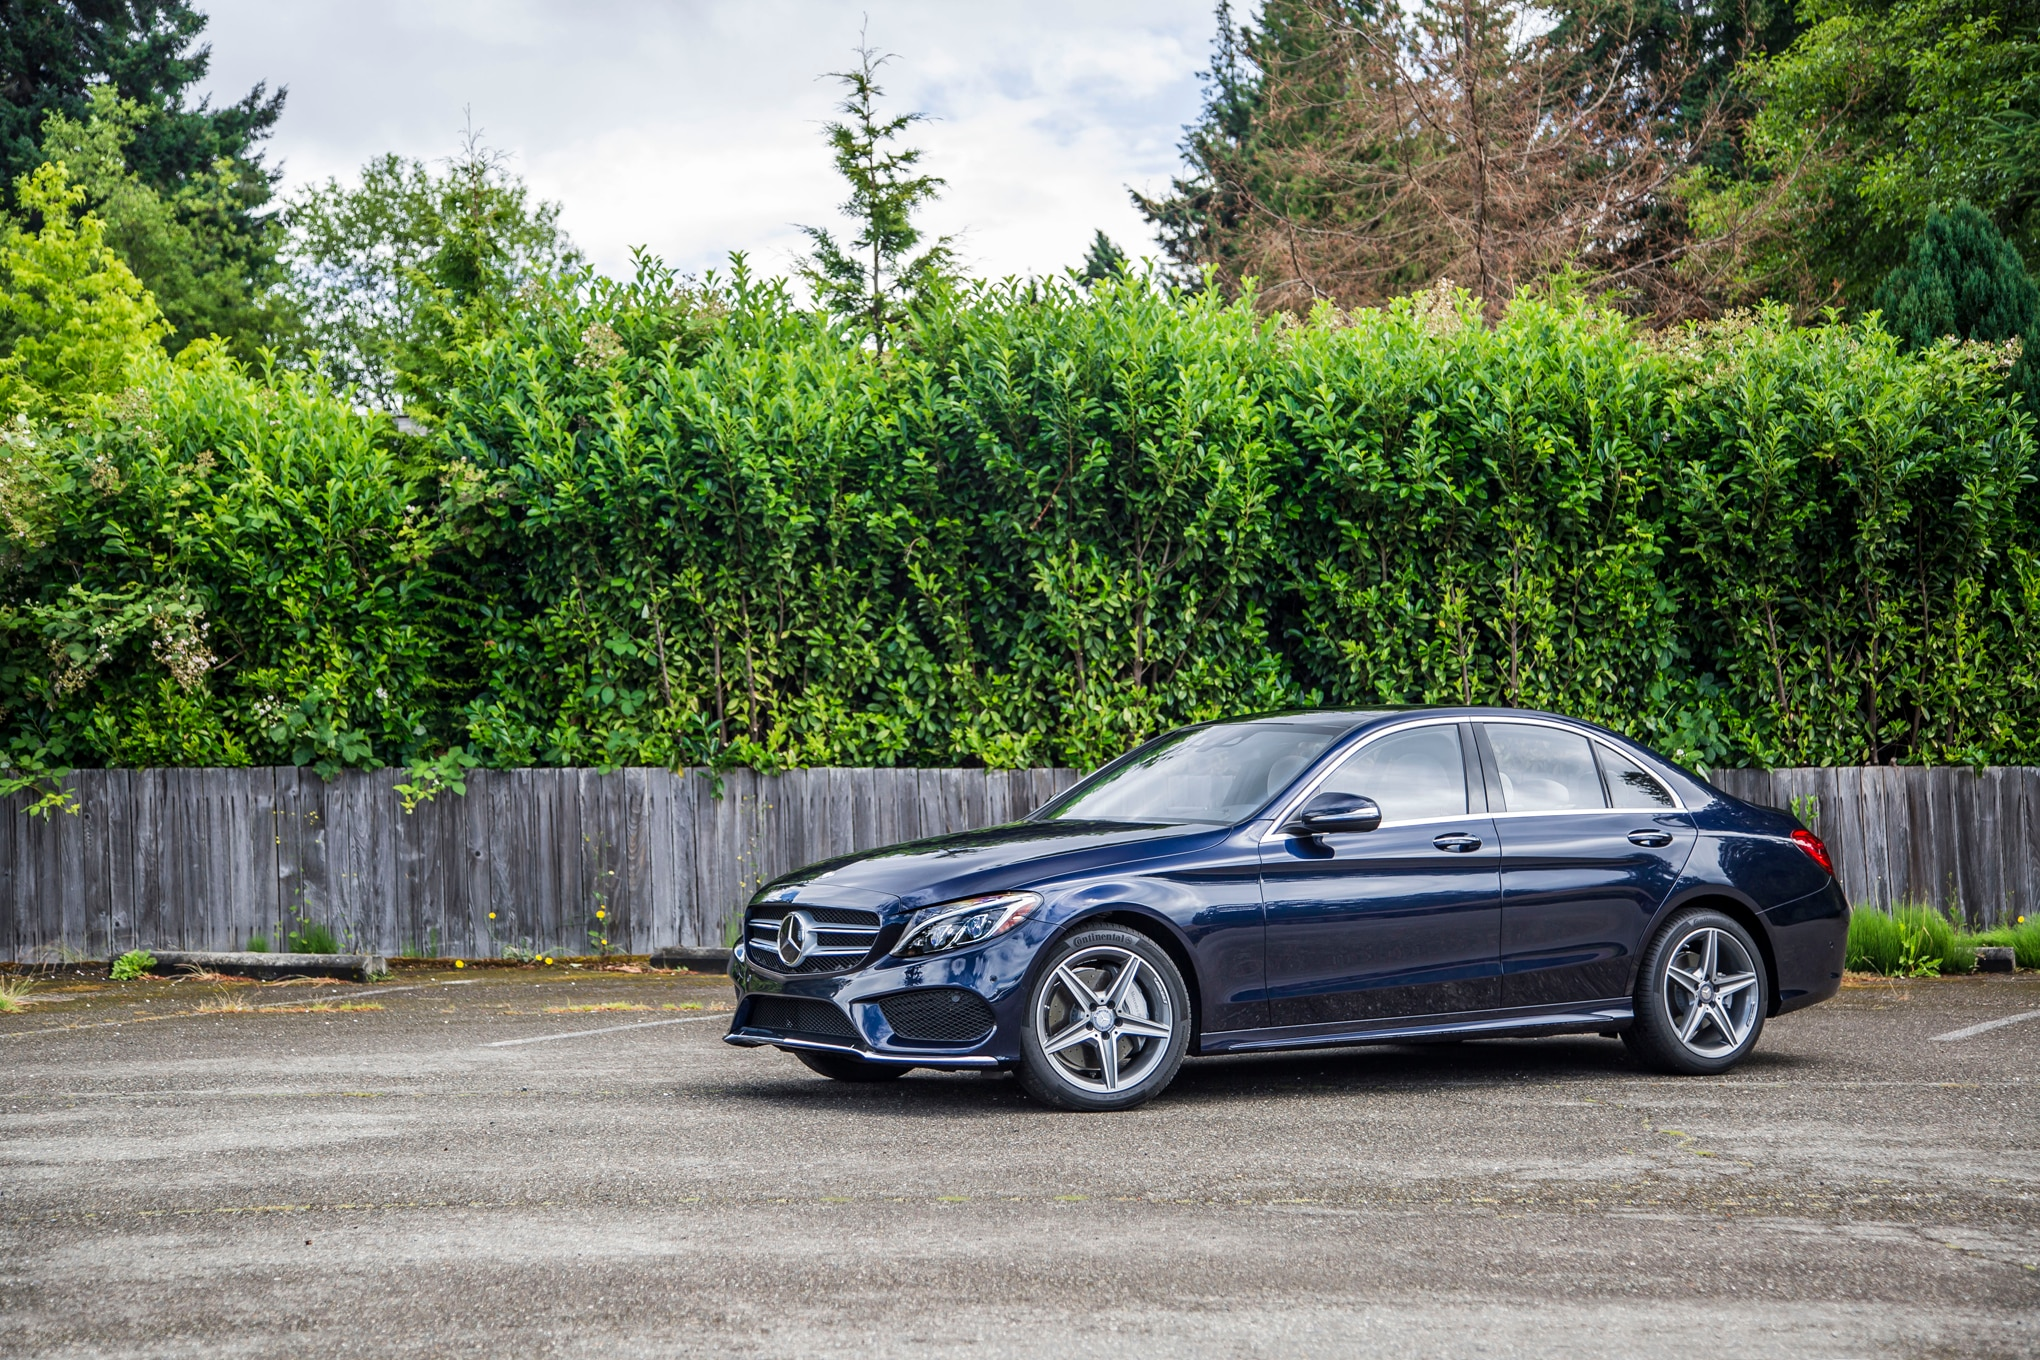 2015 mercedes benz c400 4matic review automobile magazine for Mercedes benz c400 4matic